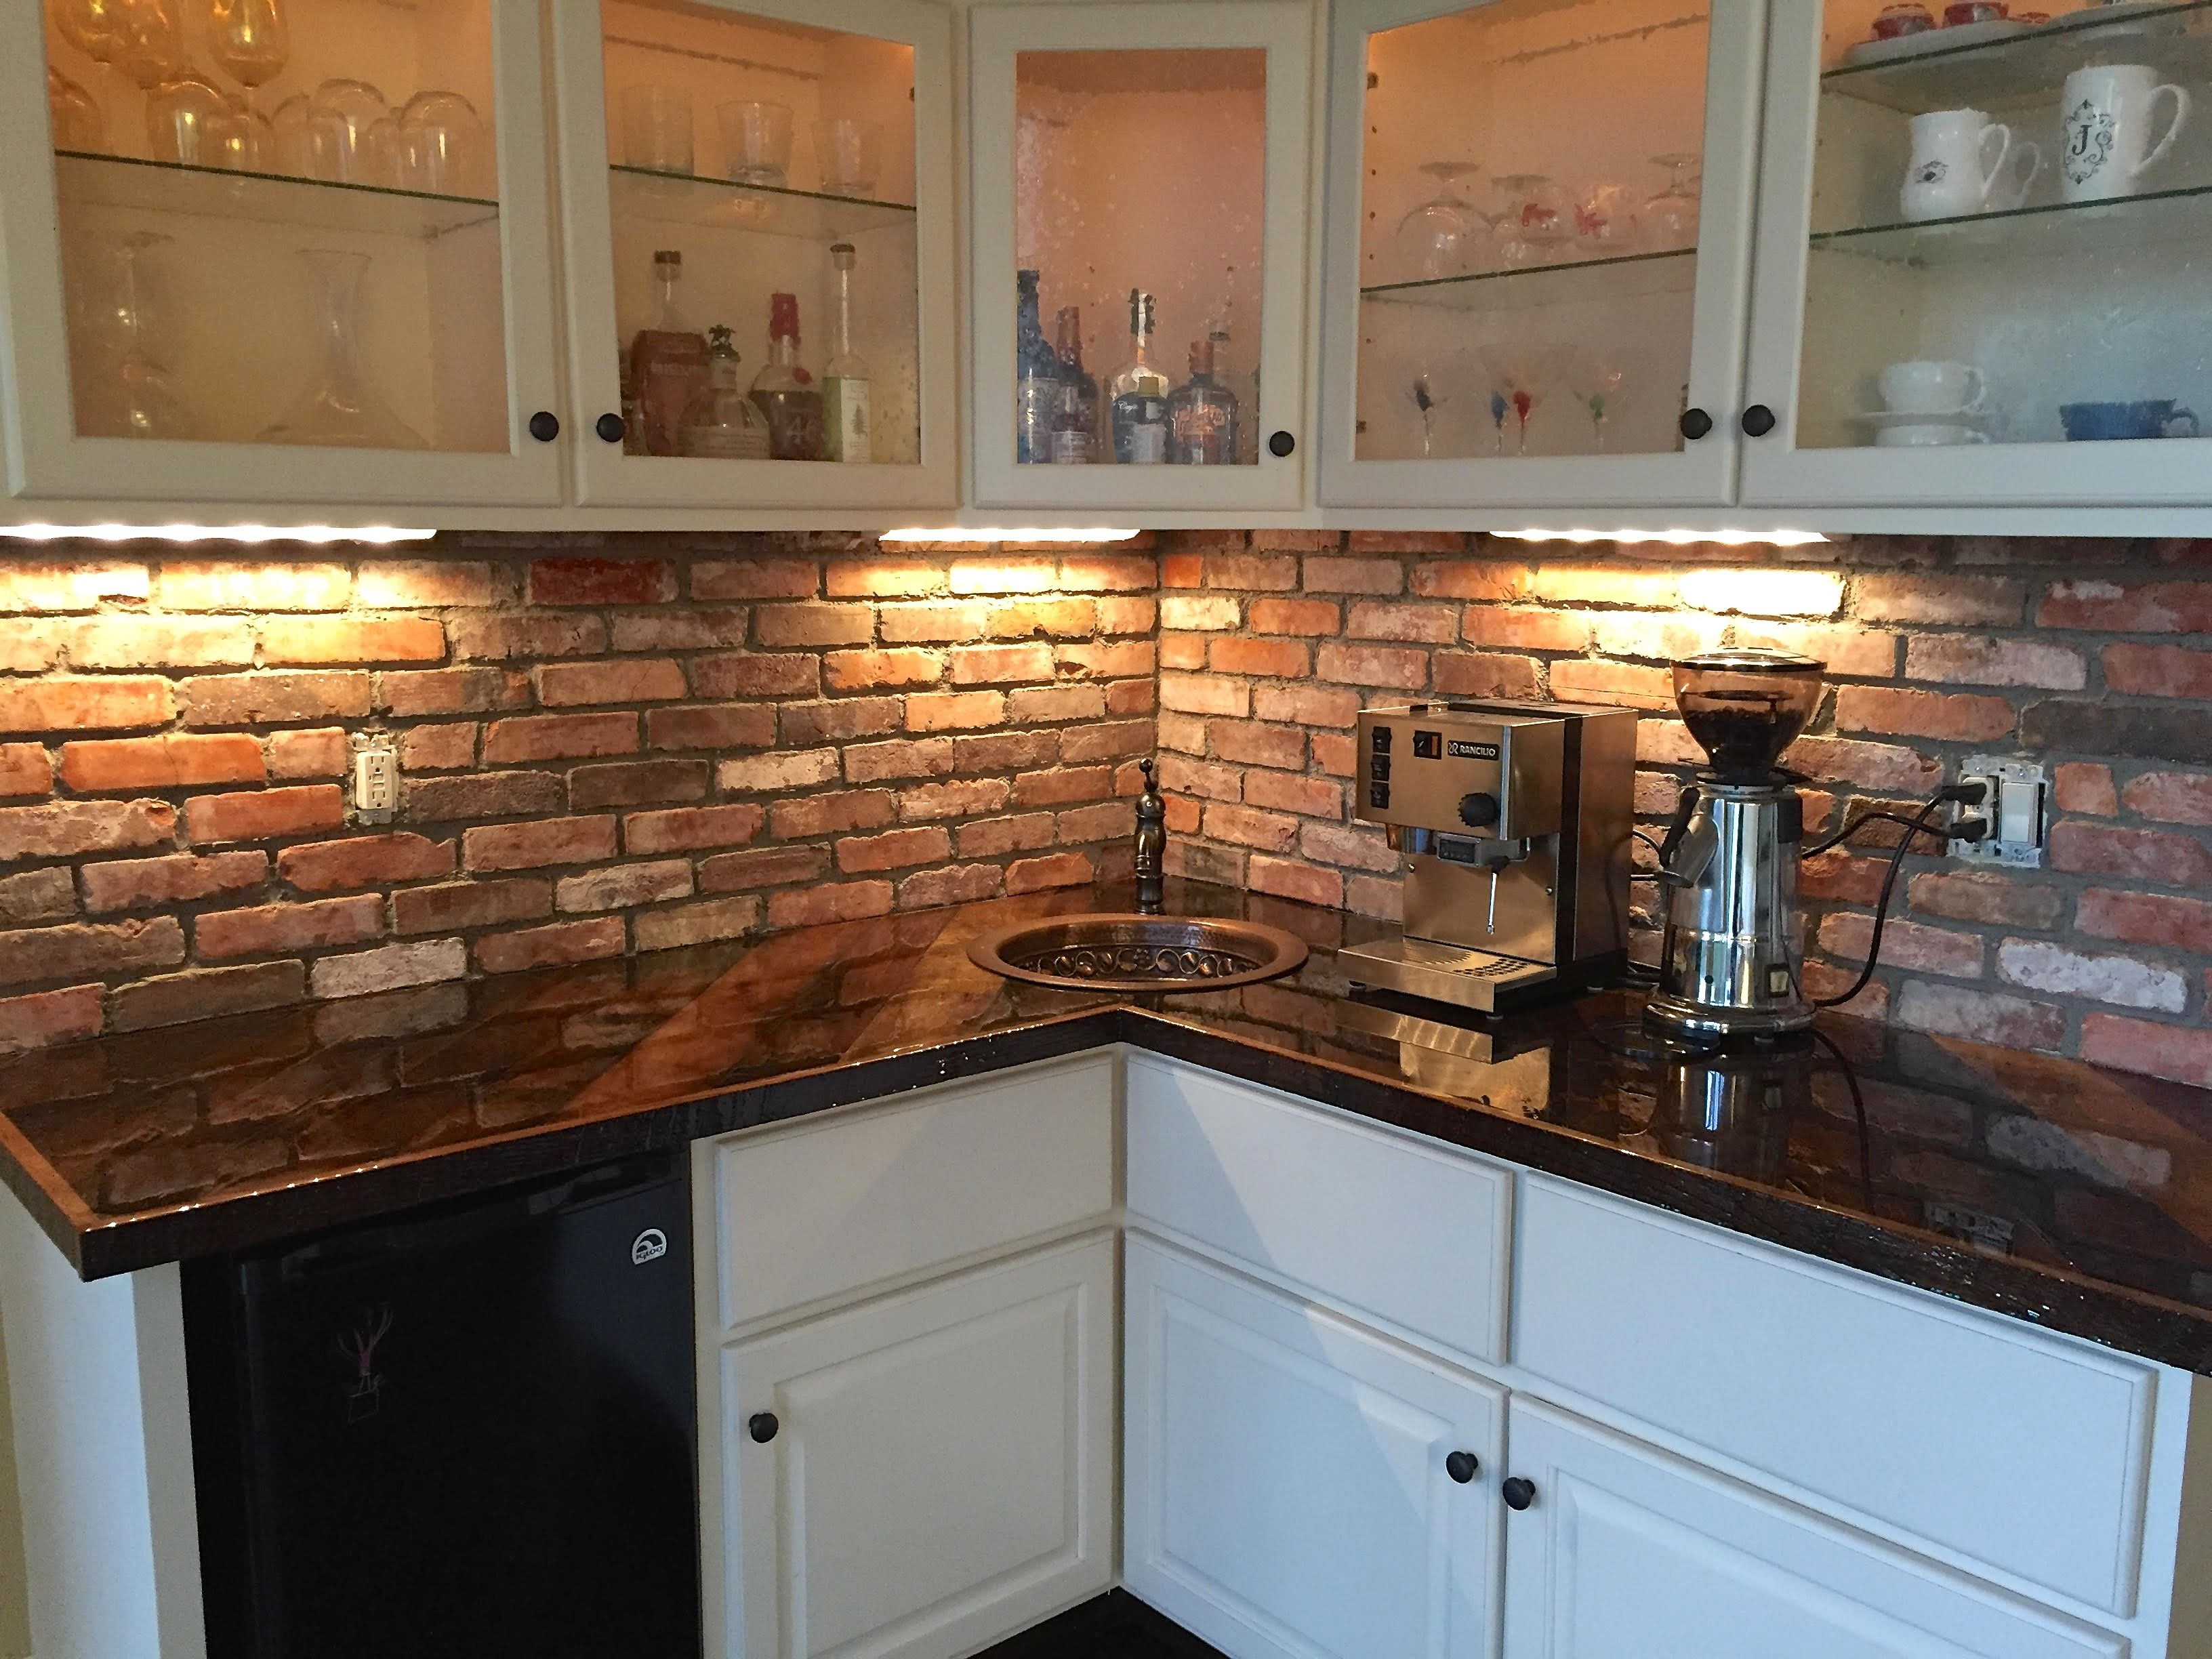 Thin Brick Tile Backsplash Installed In Kitchen A Similar